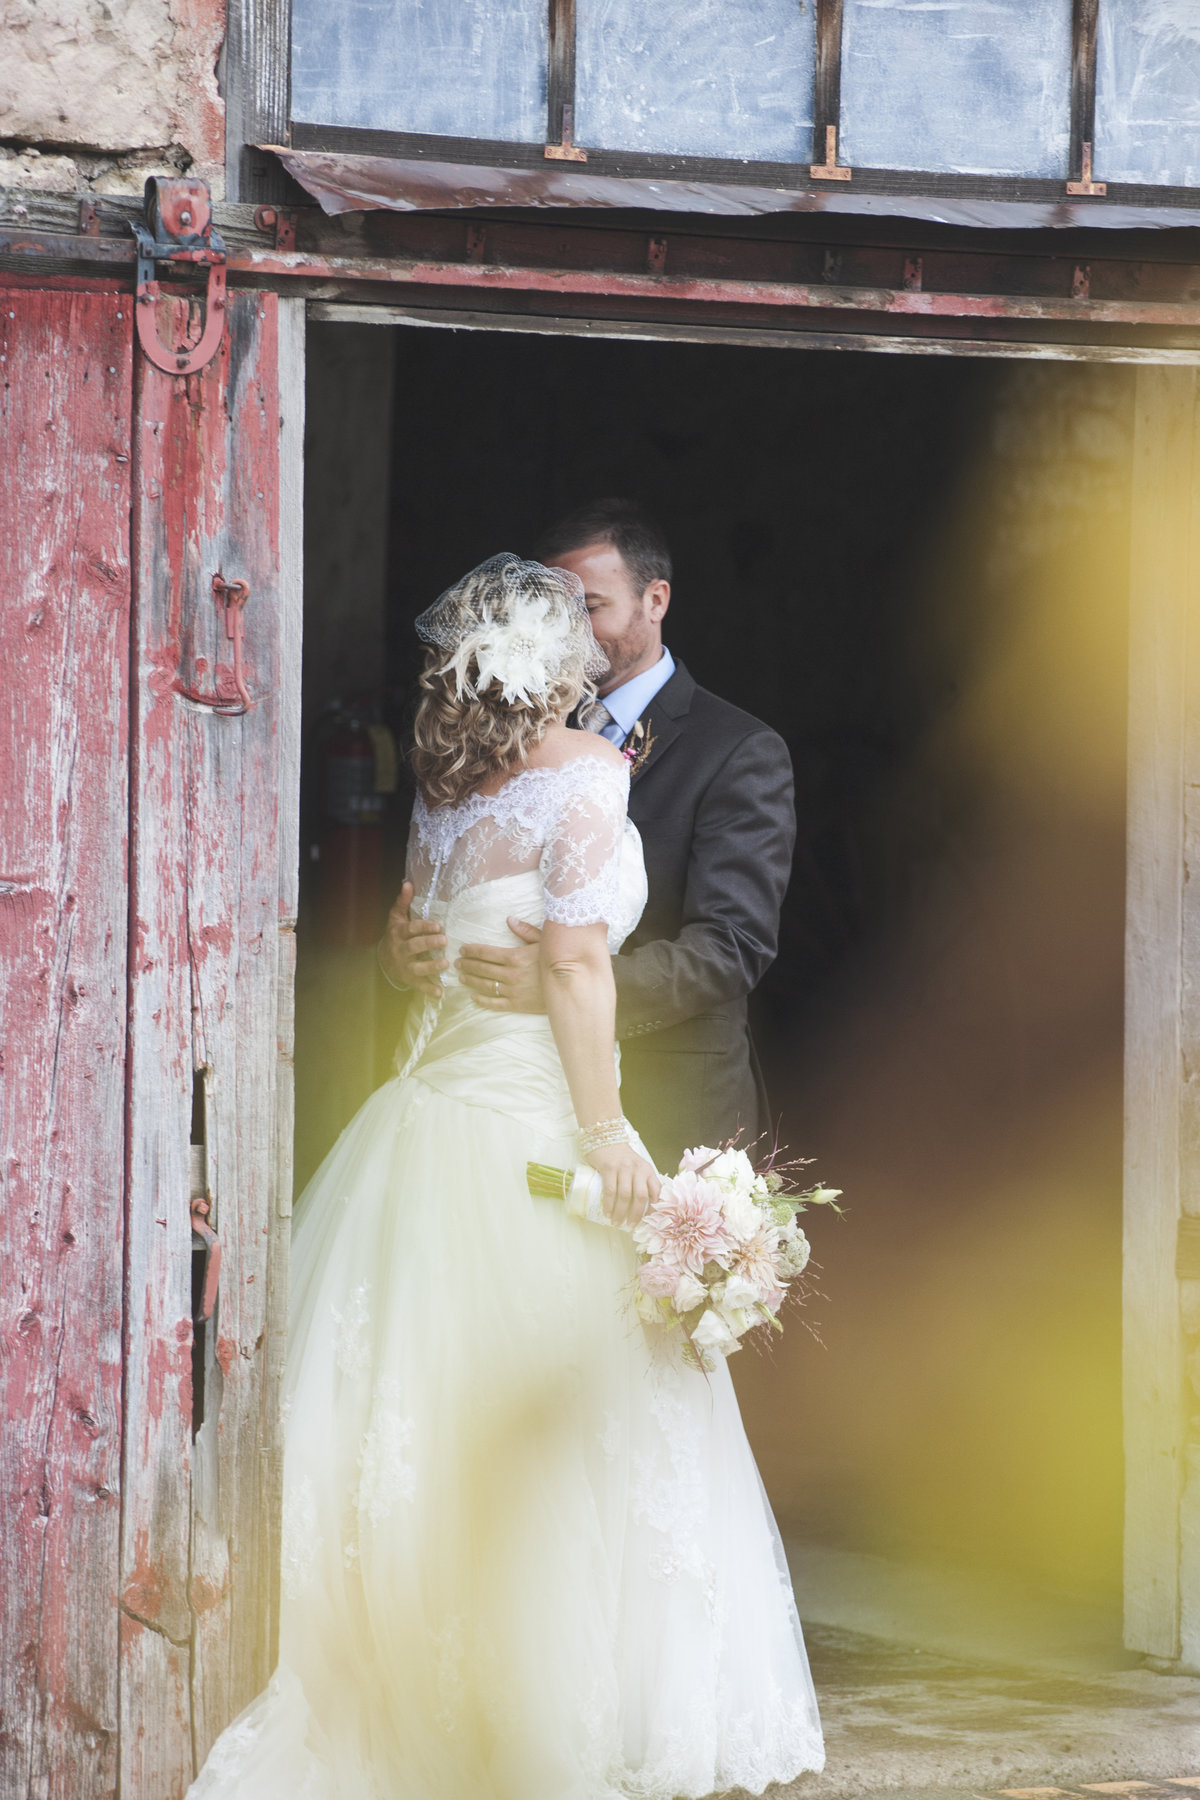 Rustic elegant barn wedding at Mulberry Lane Farm by Casi Lea Photography-green bay wedding photographer-door county wedding photographer-milwaukee wedding photographer-appleton wedding photographer-wisconsin weddings